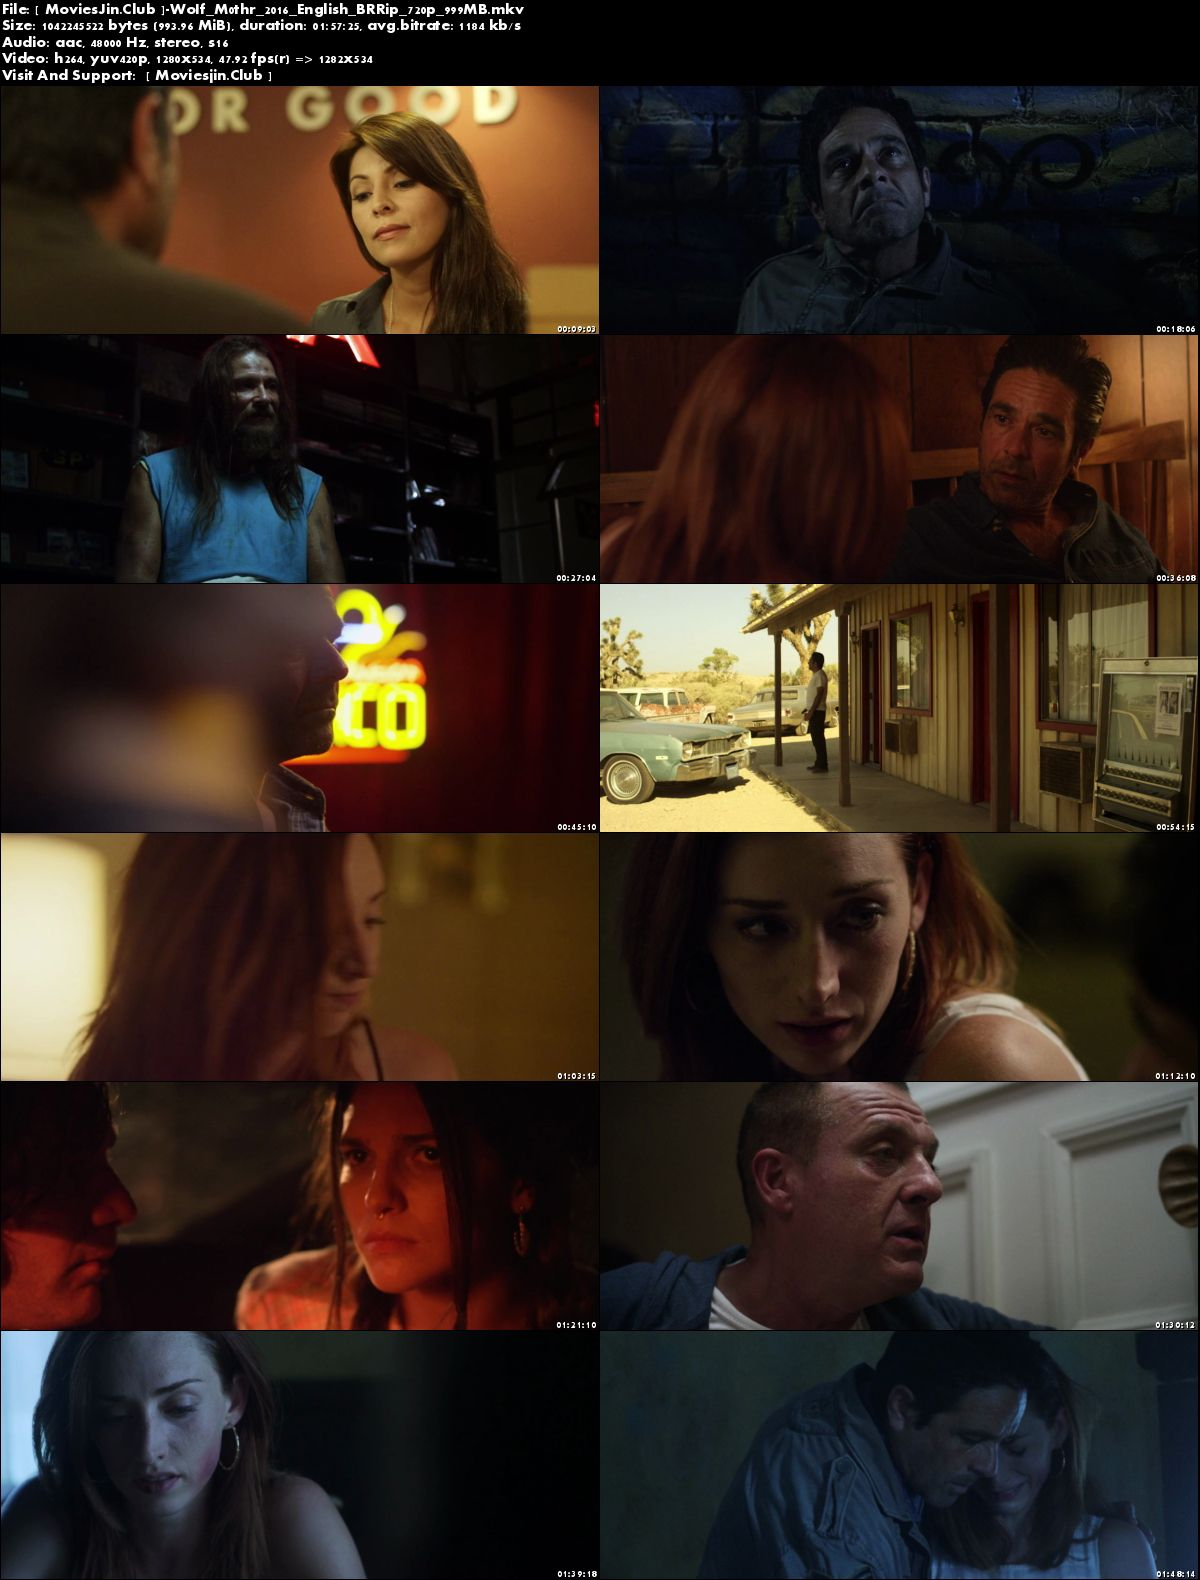 Watch Online Wolf Mother 2016 Movie Download 999MB UNRATED English BRRip 720p Full Movie Download 7starhd